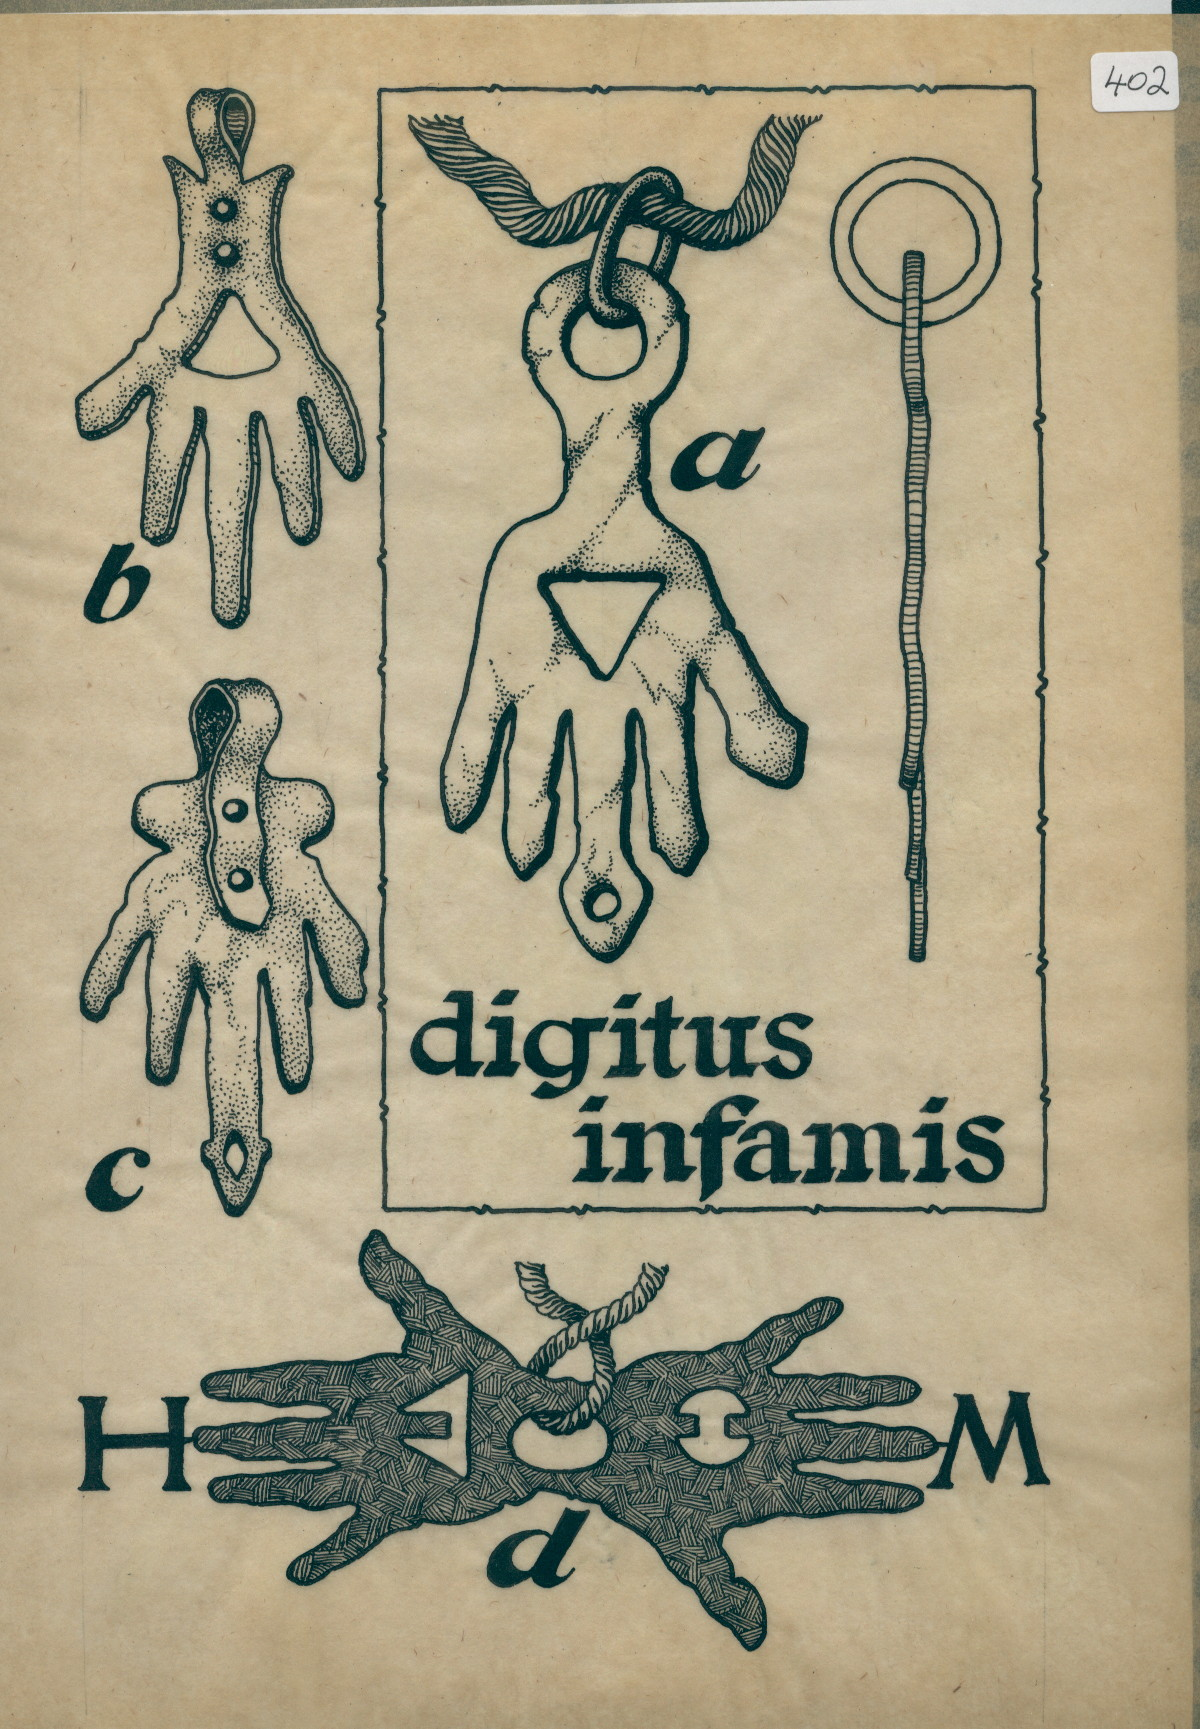 R/2/402 - drawing of four hand-amulets, one double, and 'Digitus